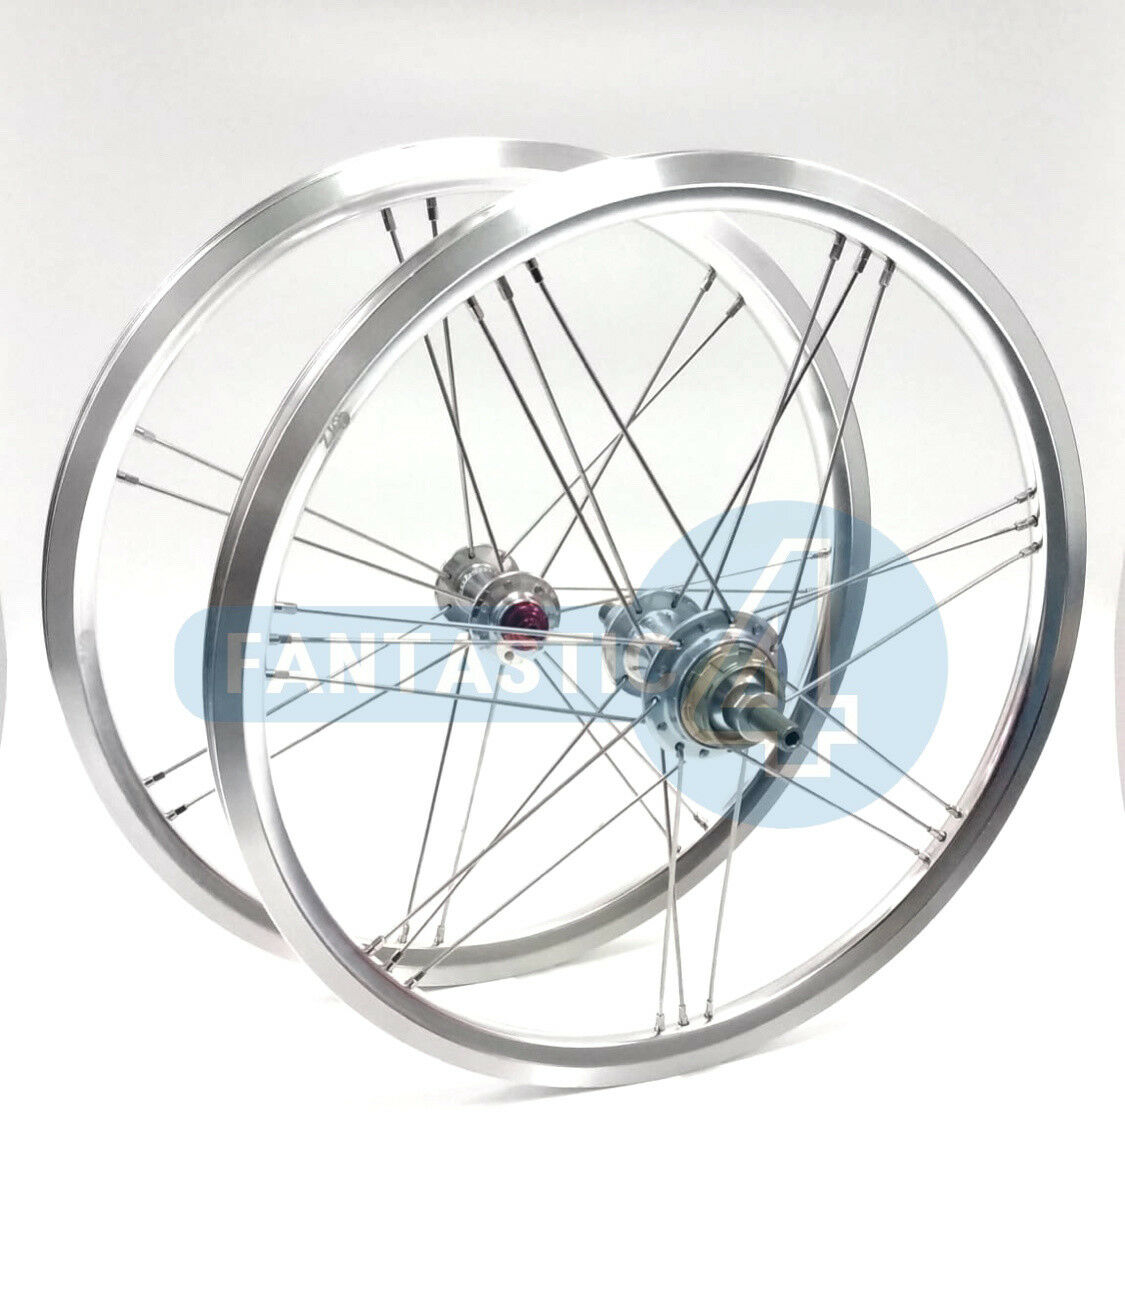 2018 ORZ G3 Aluminium Alloy 16  349 wheels set for Brompton Bicycle  3 4 Speed